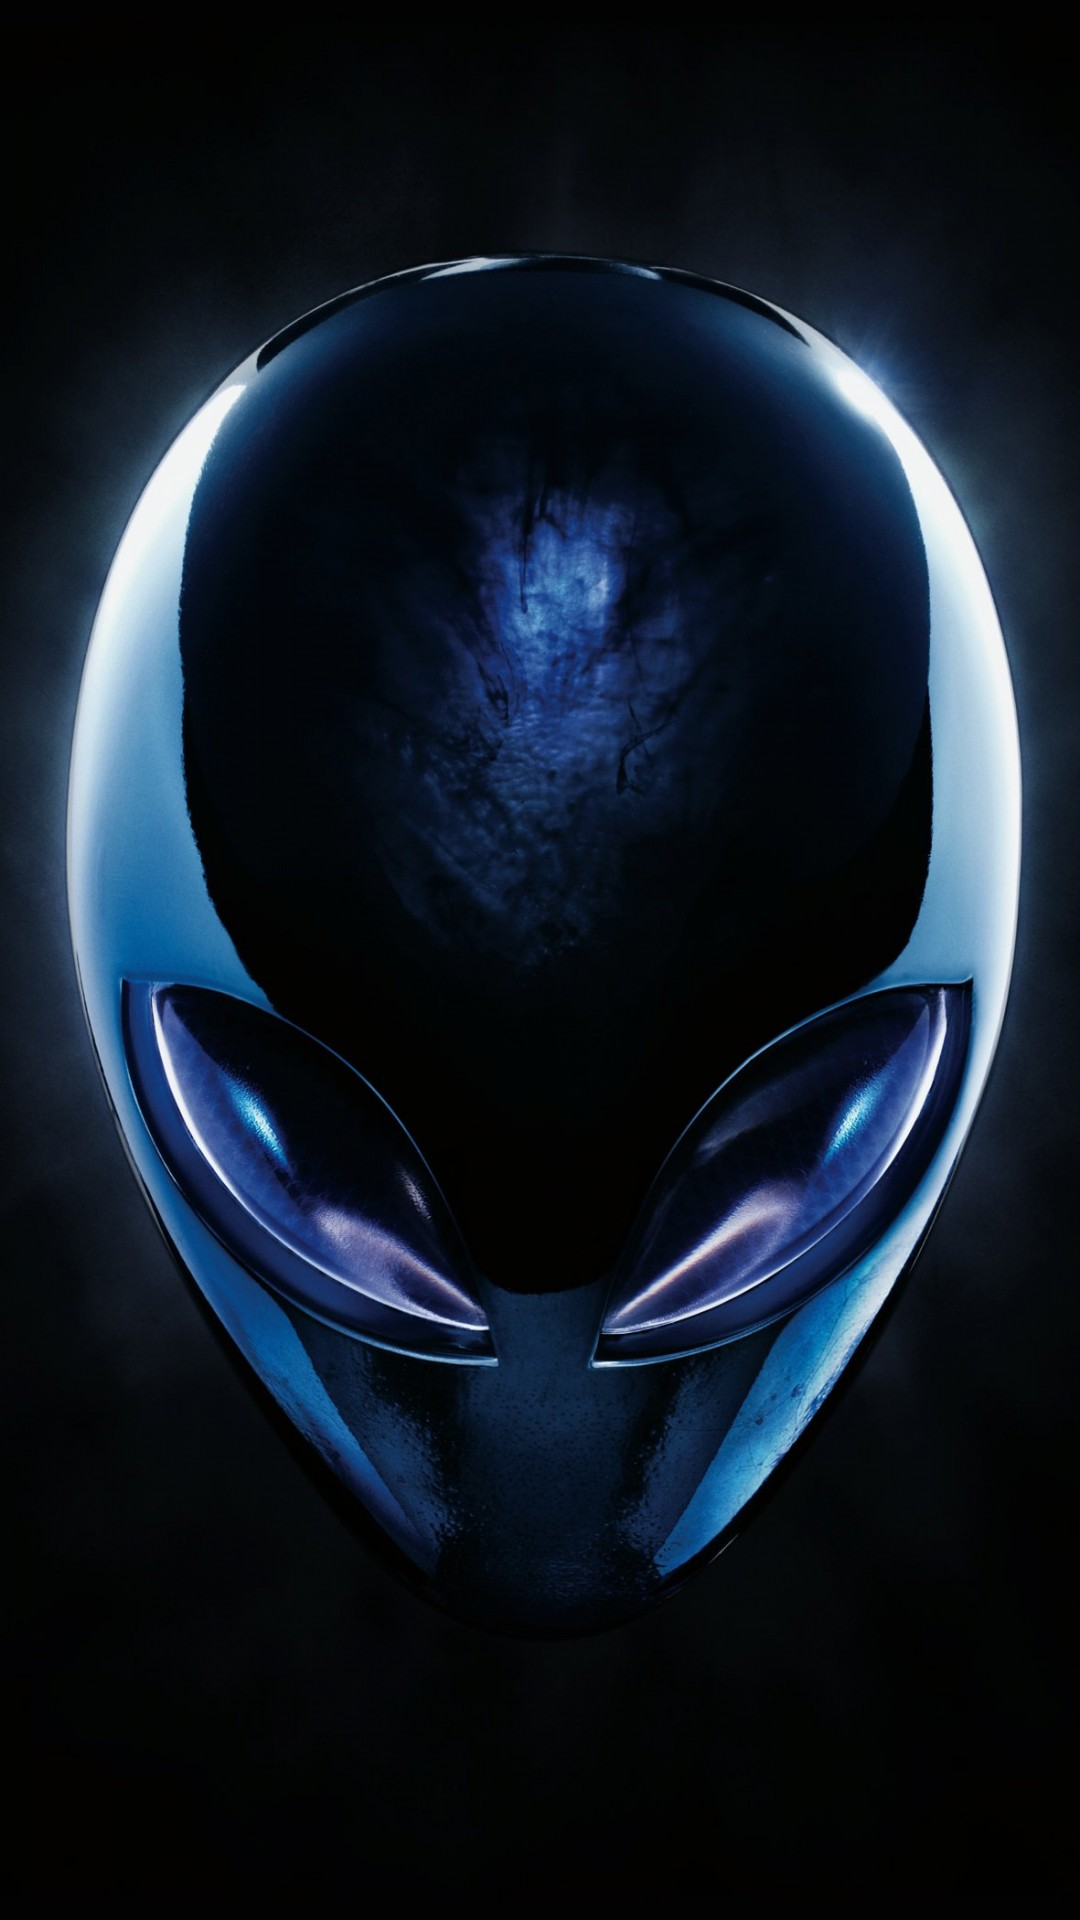 Alienware Blue Logo Wallpaper for SAMSUNG Galaxy Note 3